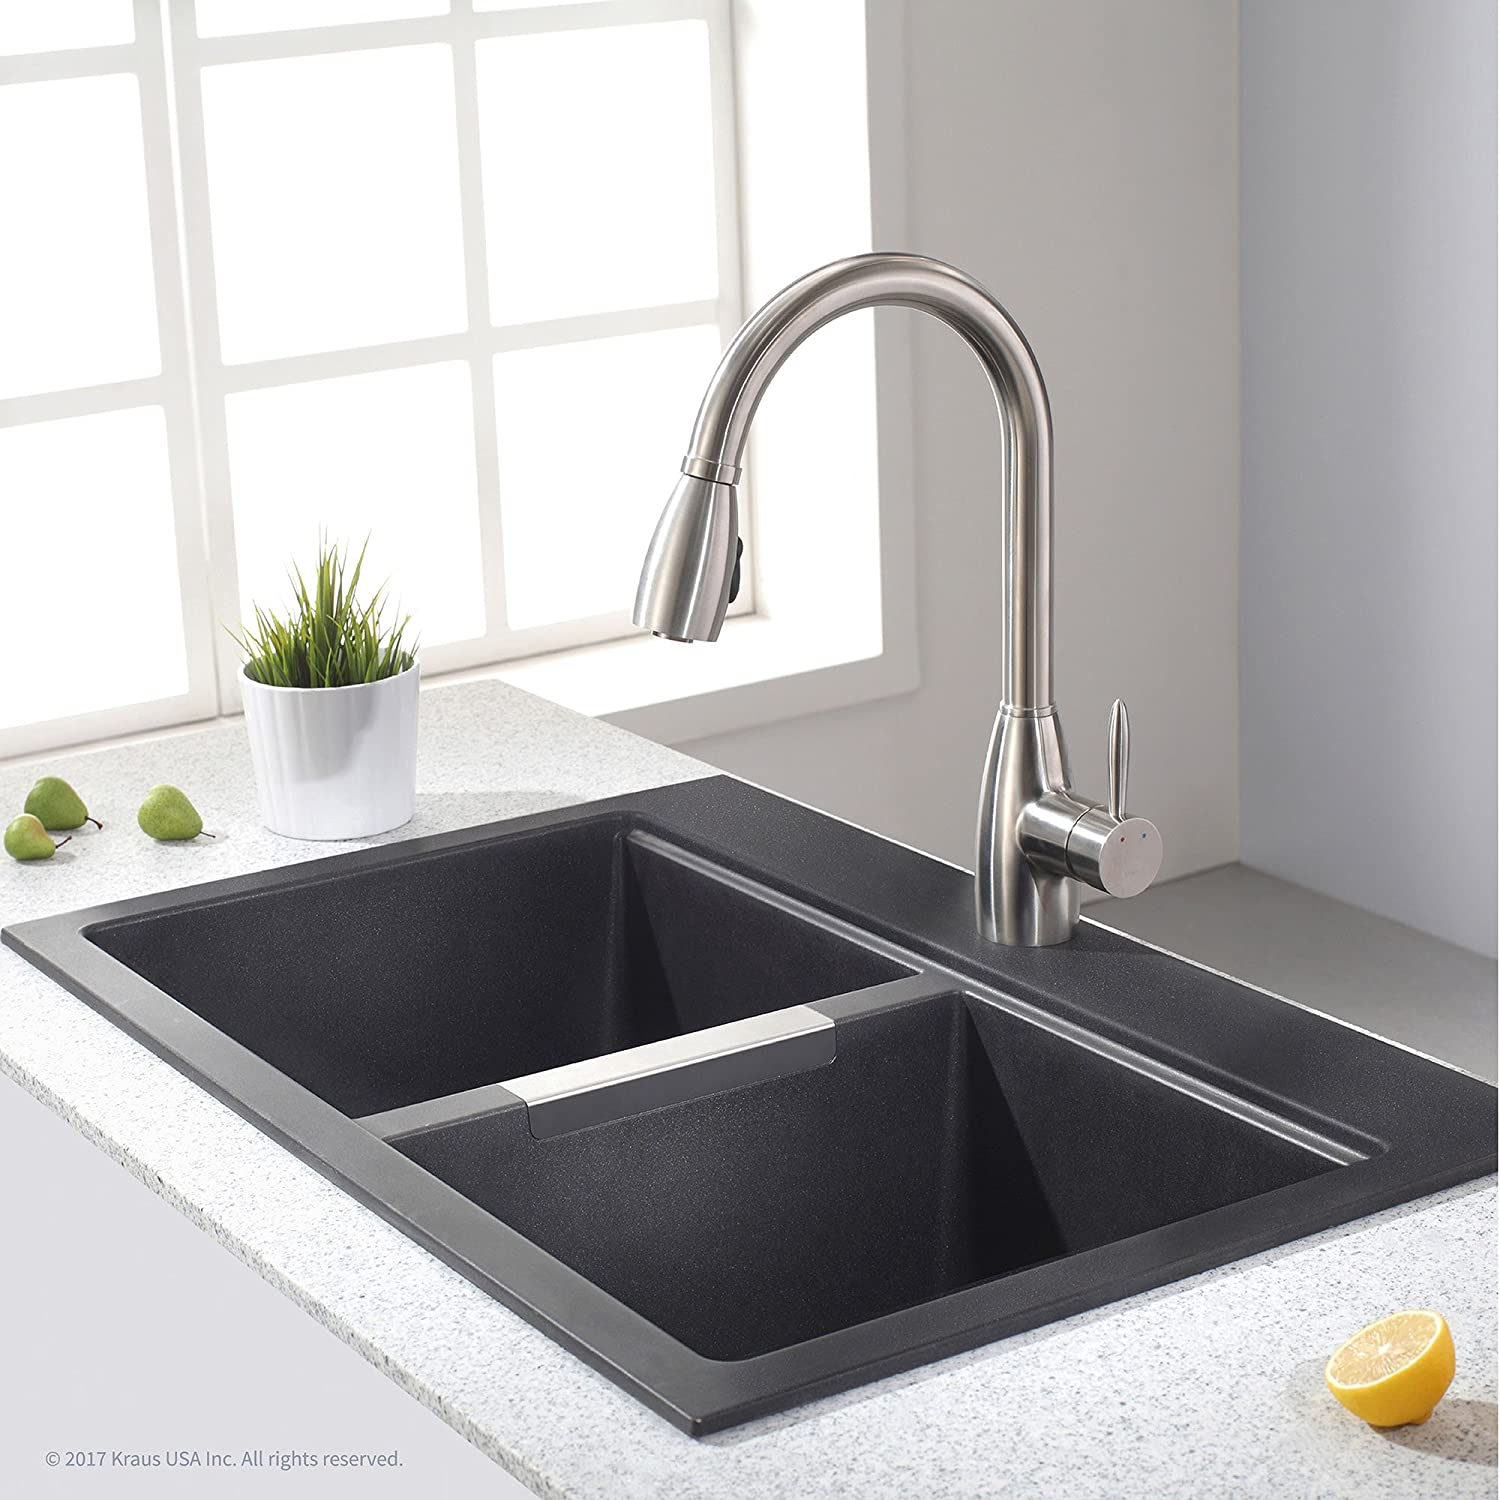 Granite Composite Sinks Reviews 2019 List Of Sinks That